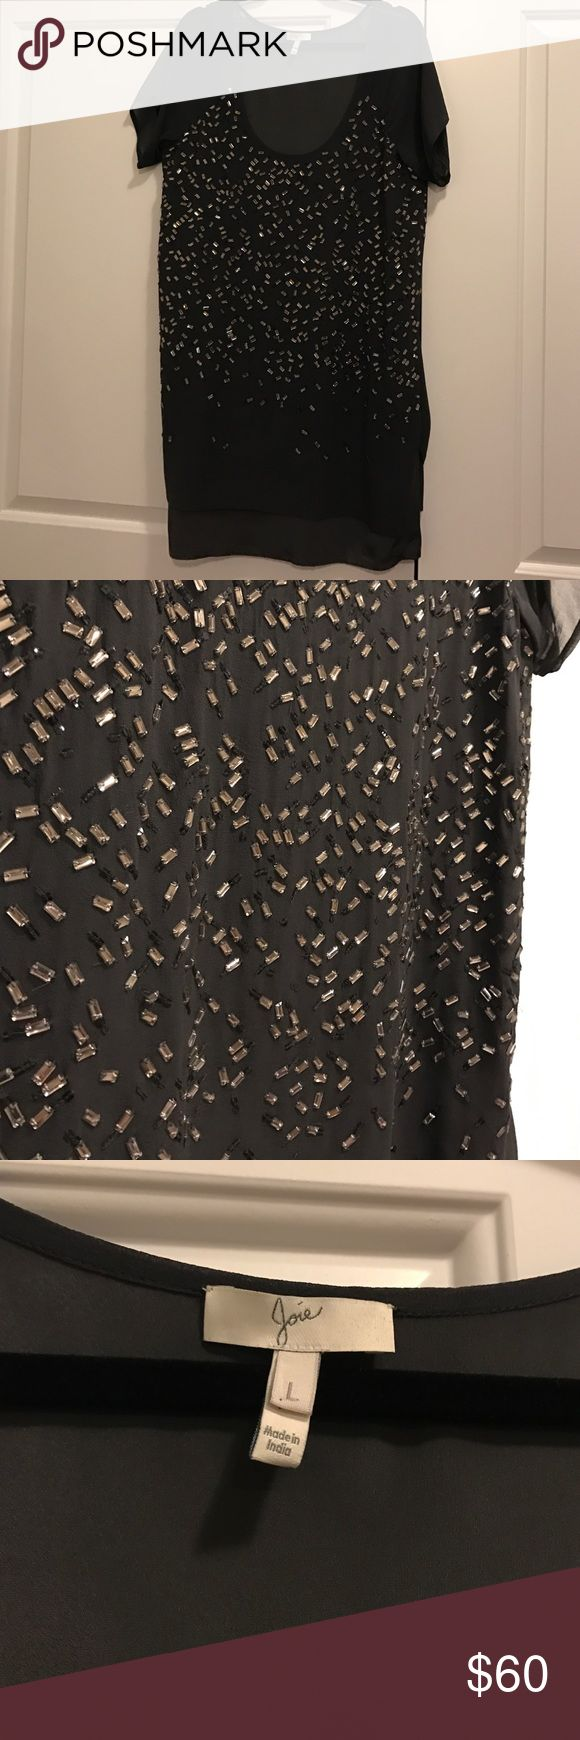 Joie Black Beaded Shift Dress Great joie dress with sequin detail. Two layers (see 4th pic) with silky under layer and sheer top layer. Size L great condition. Joie Dresses